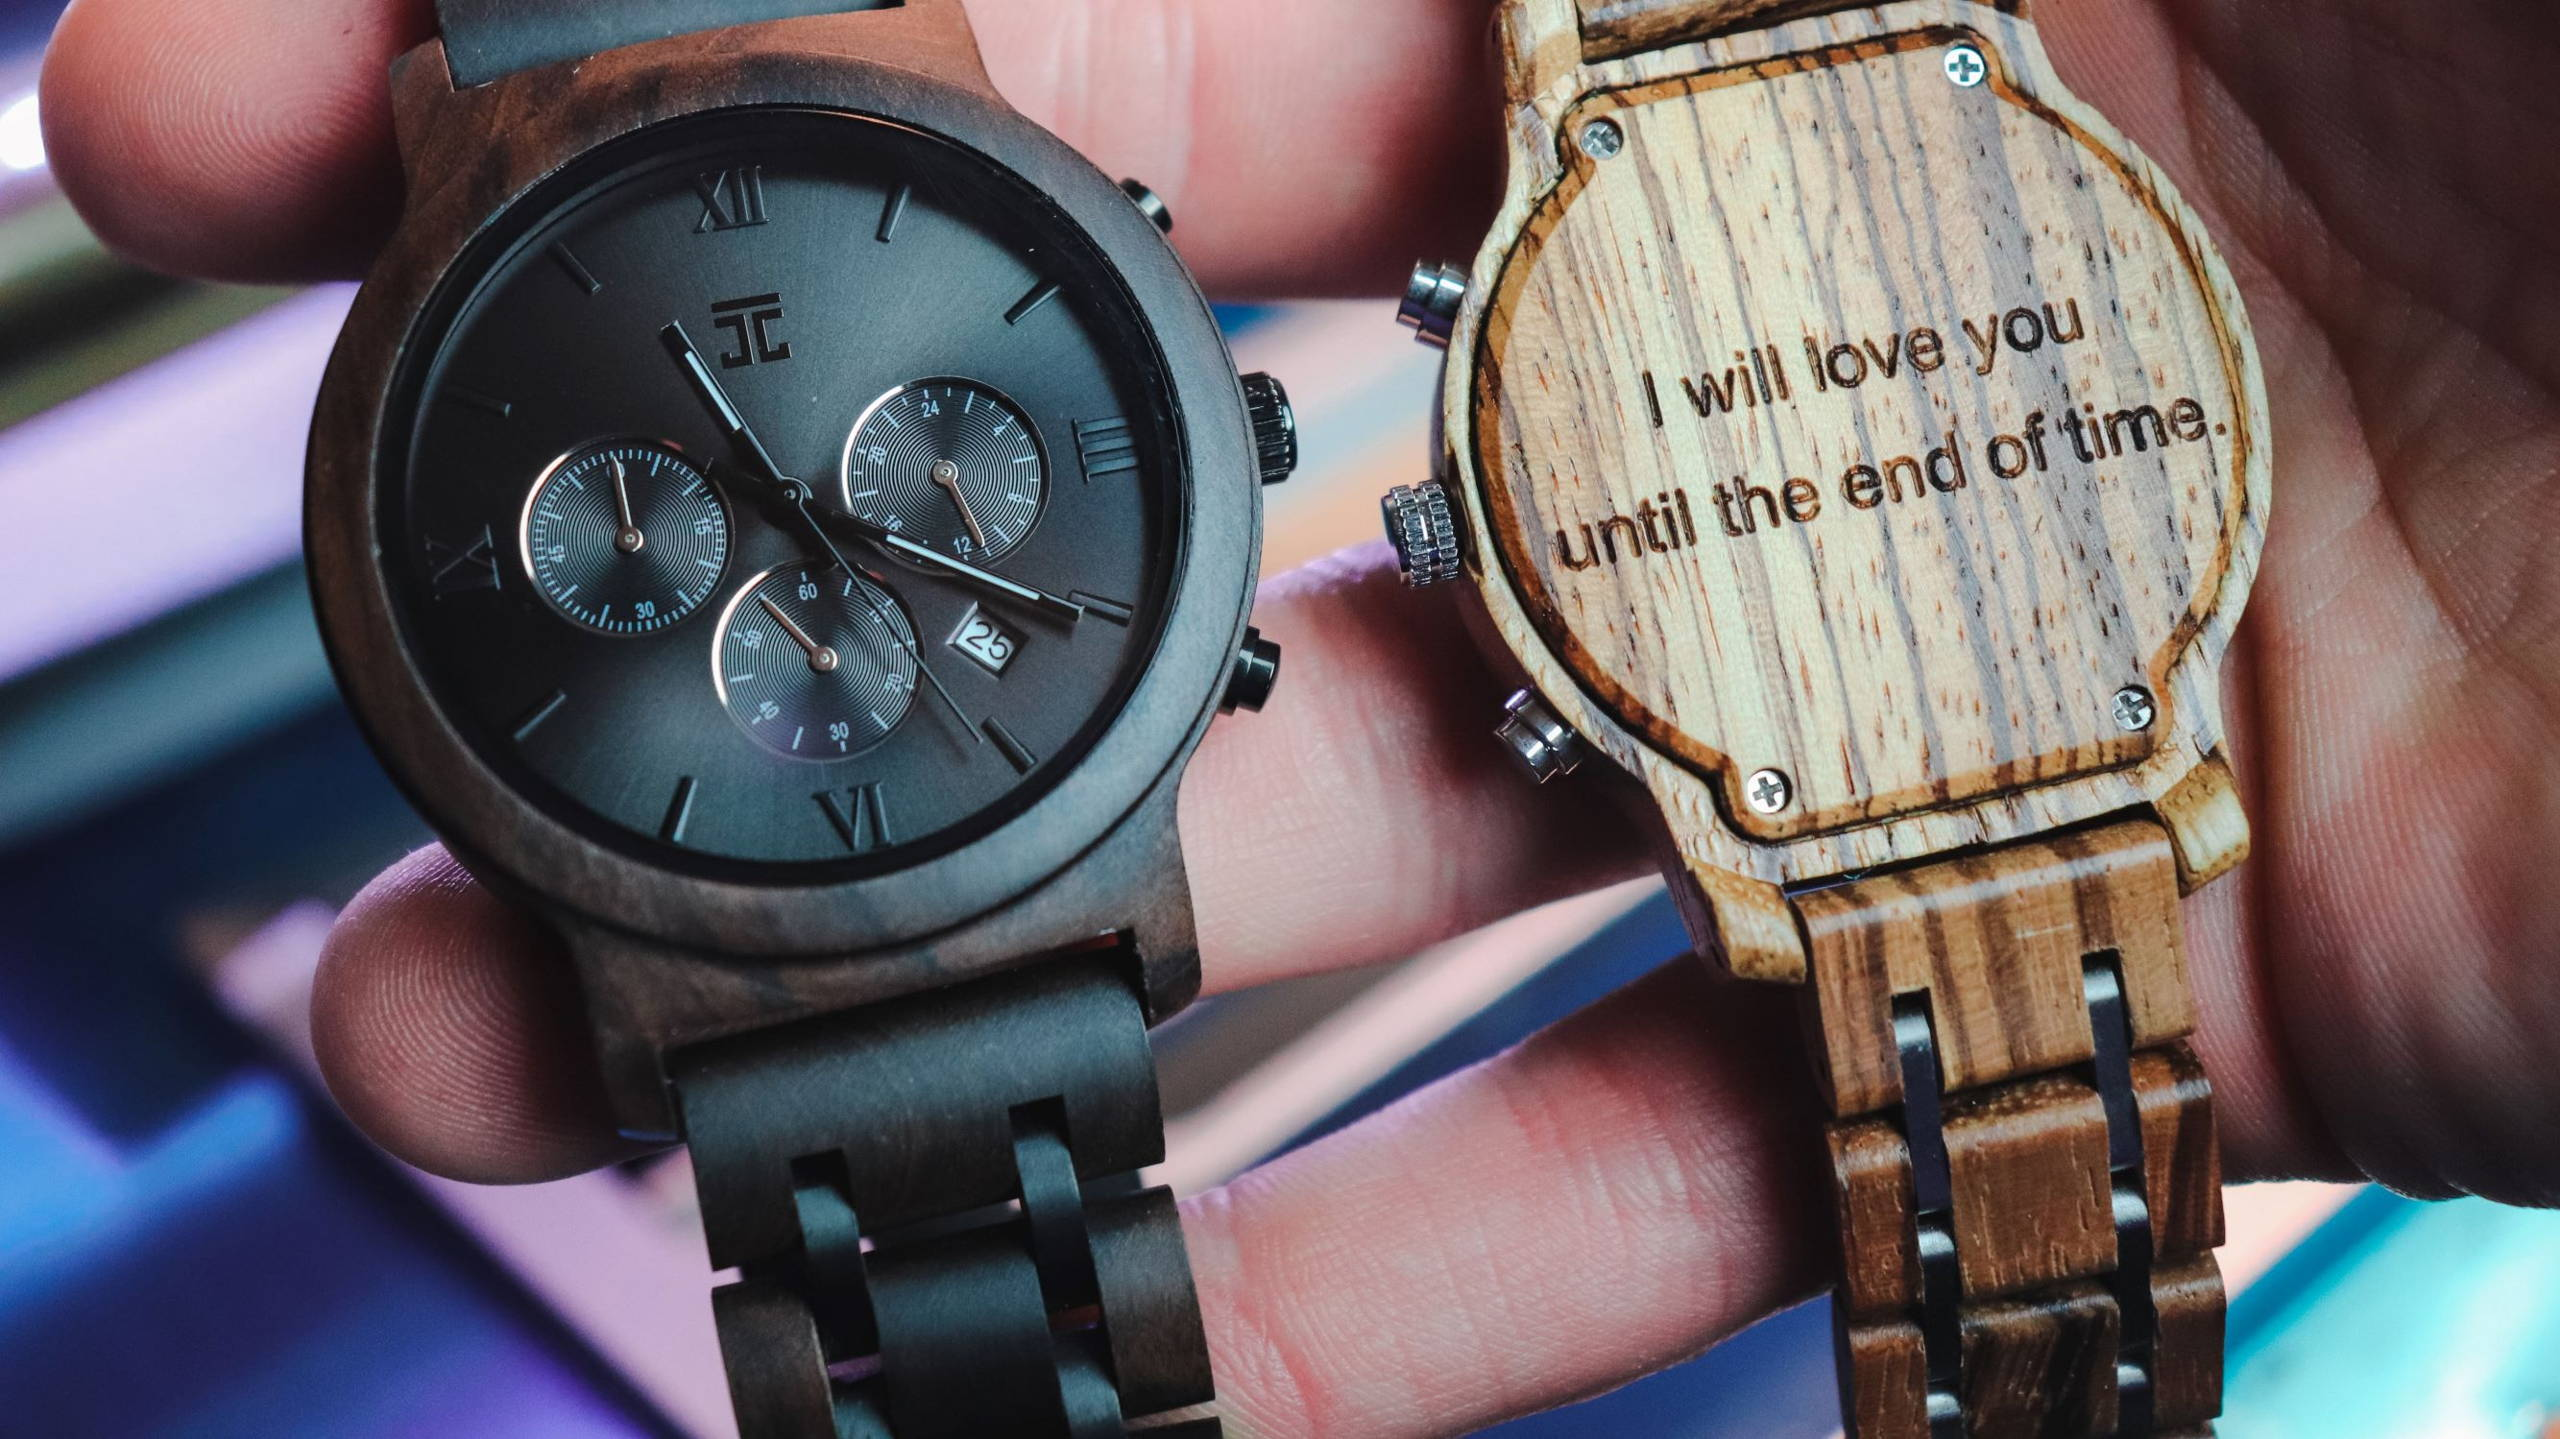 Joycoast Wooden Watches with Engravings.